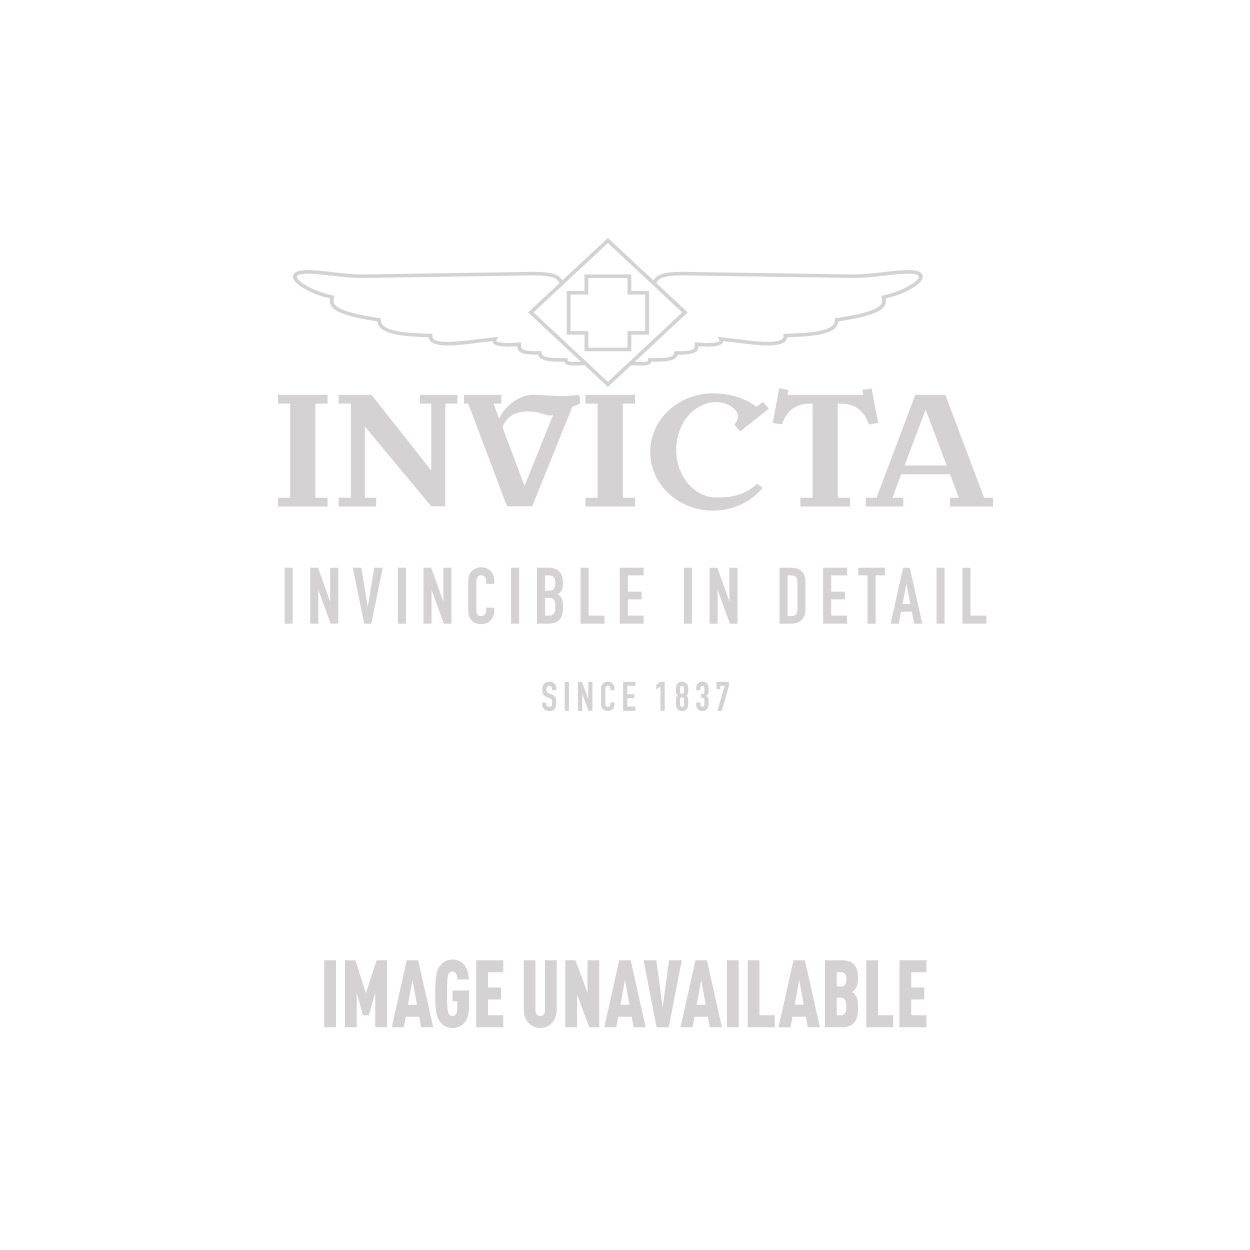 Invicta Wildflower Swiss Movement Quartz Watch - Gold case with Gold tone Stainless Steel band - Model 4743